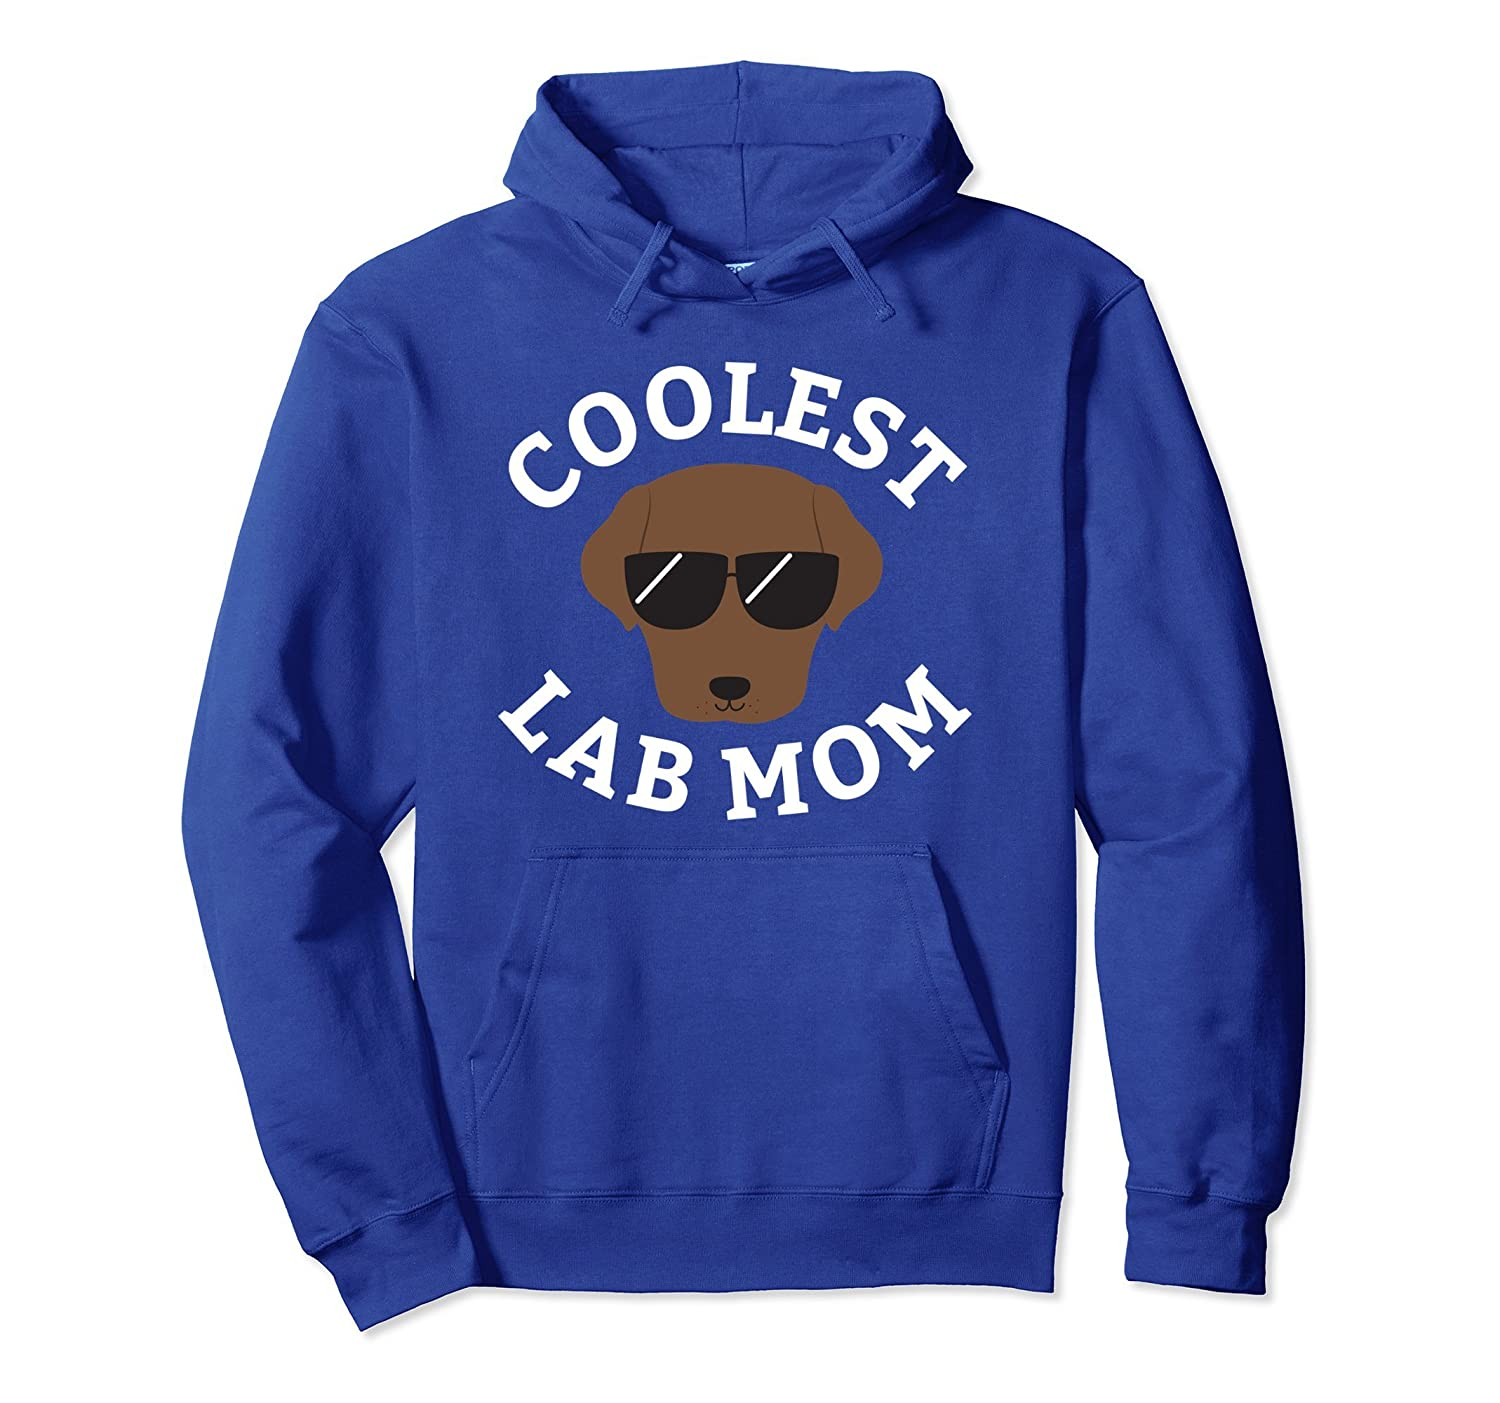 Coolest Chocolate Lab Mom Hoodie Shirt for Labrador Moms-TH